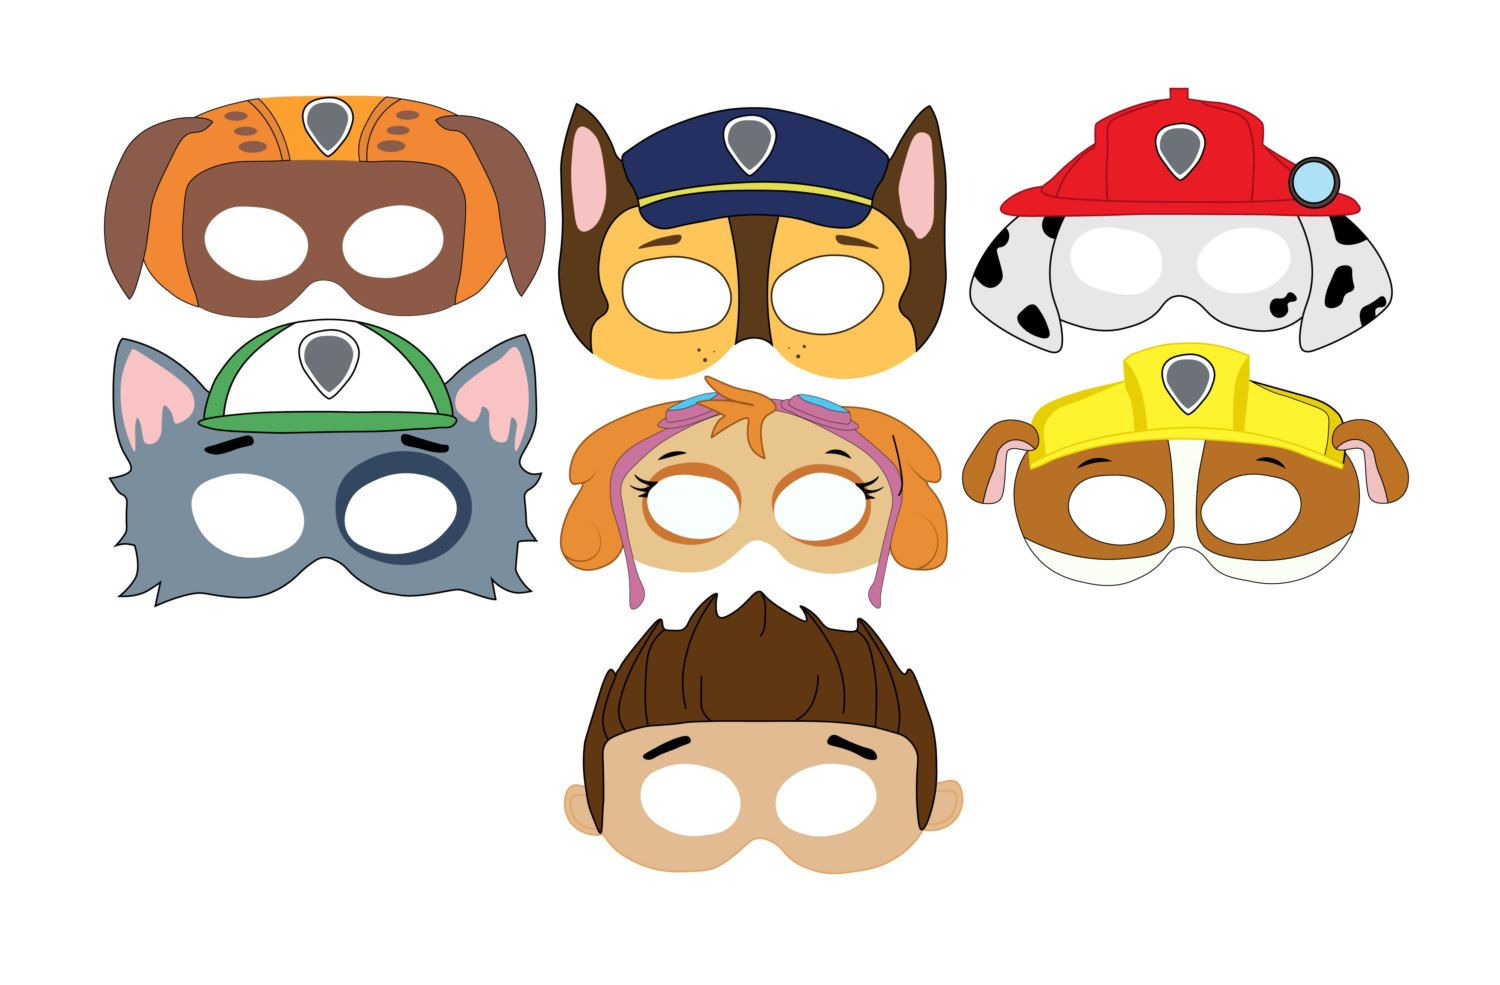 It's just a picture of Handy Paw Patrol Printable Masks